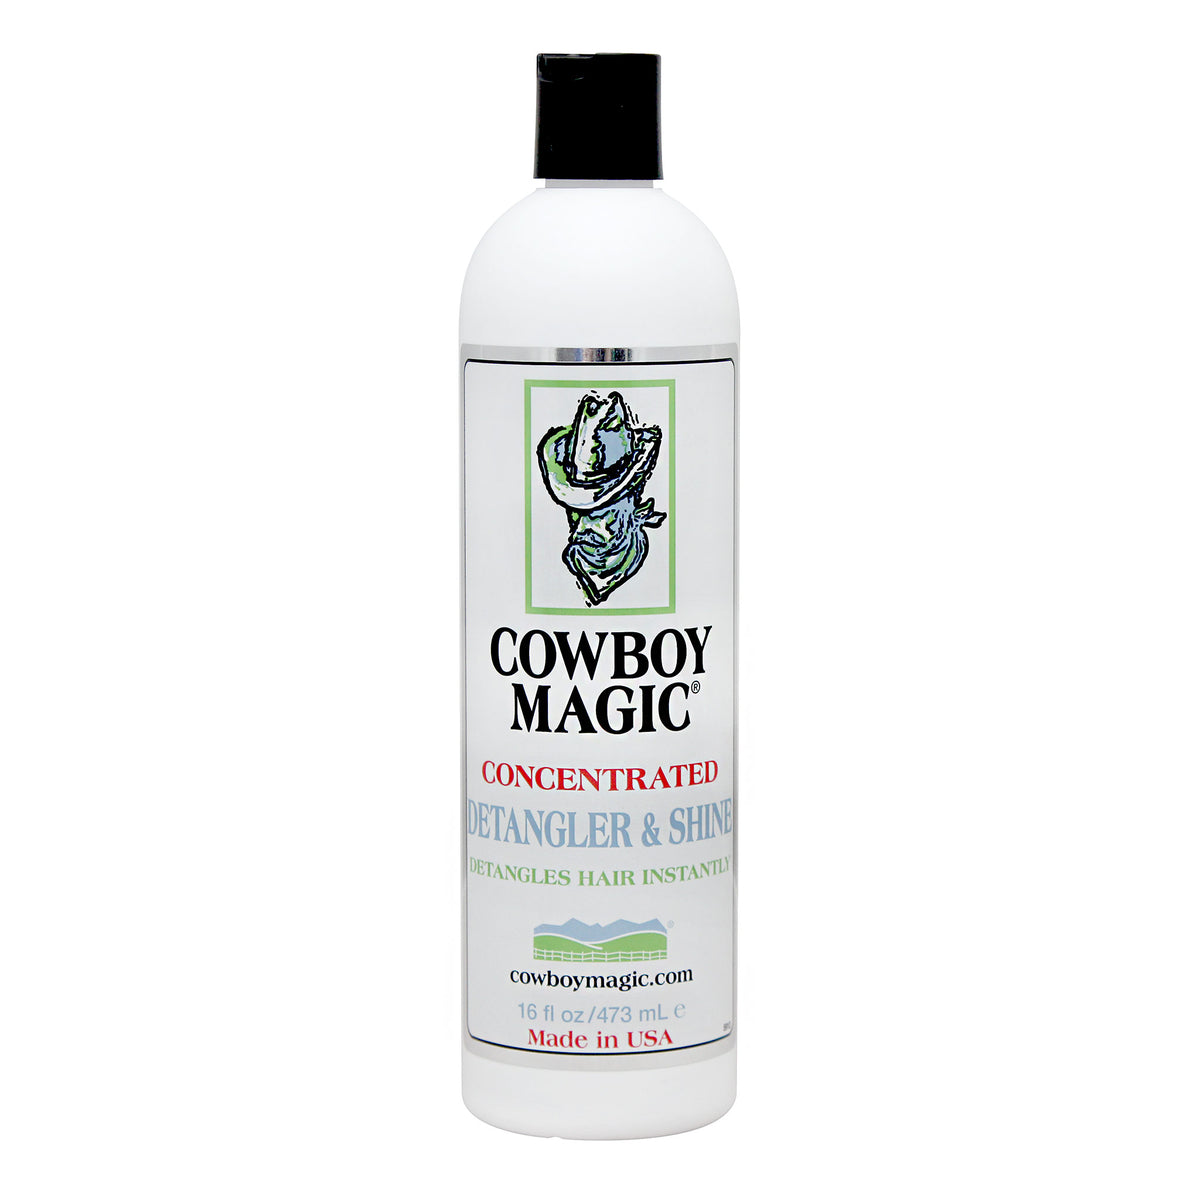 Cowboy Magic Detangler & Shine